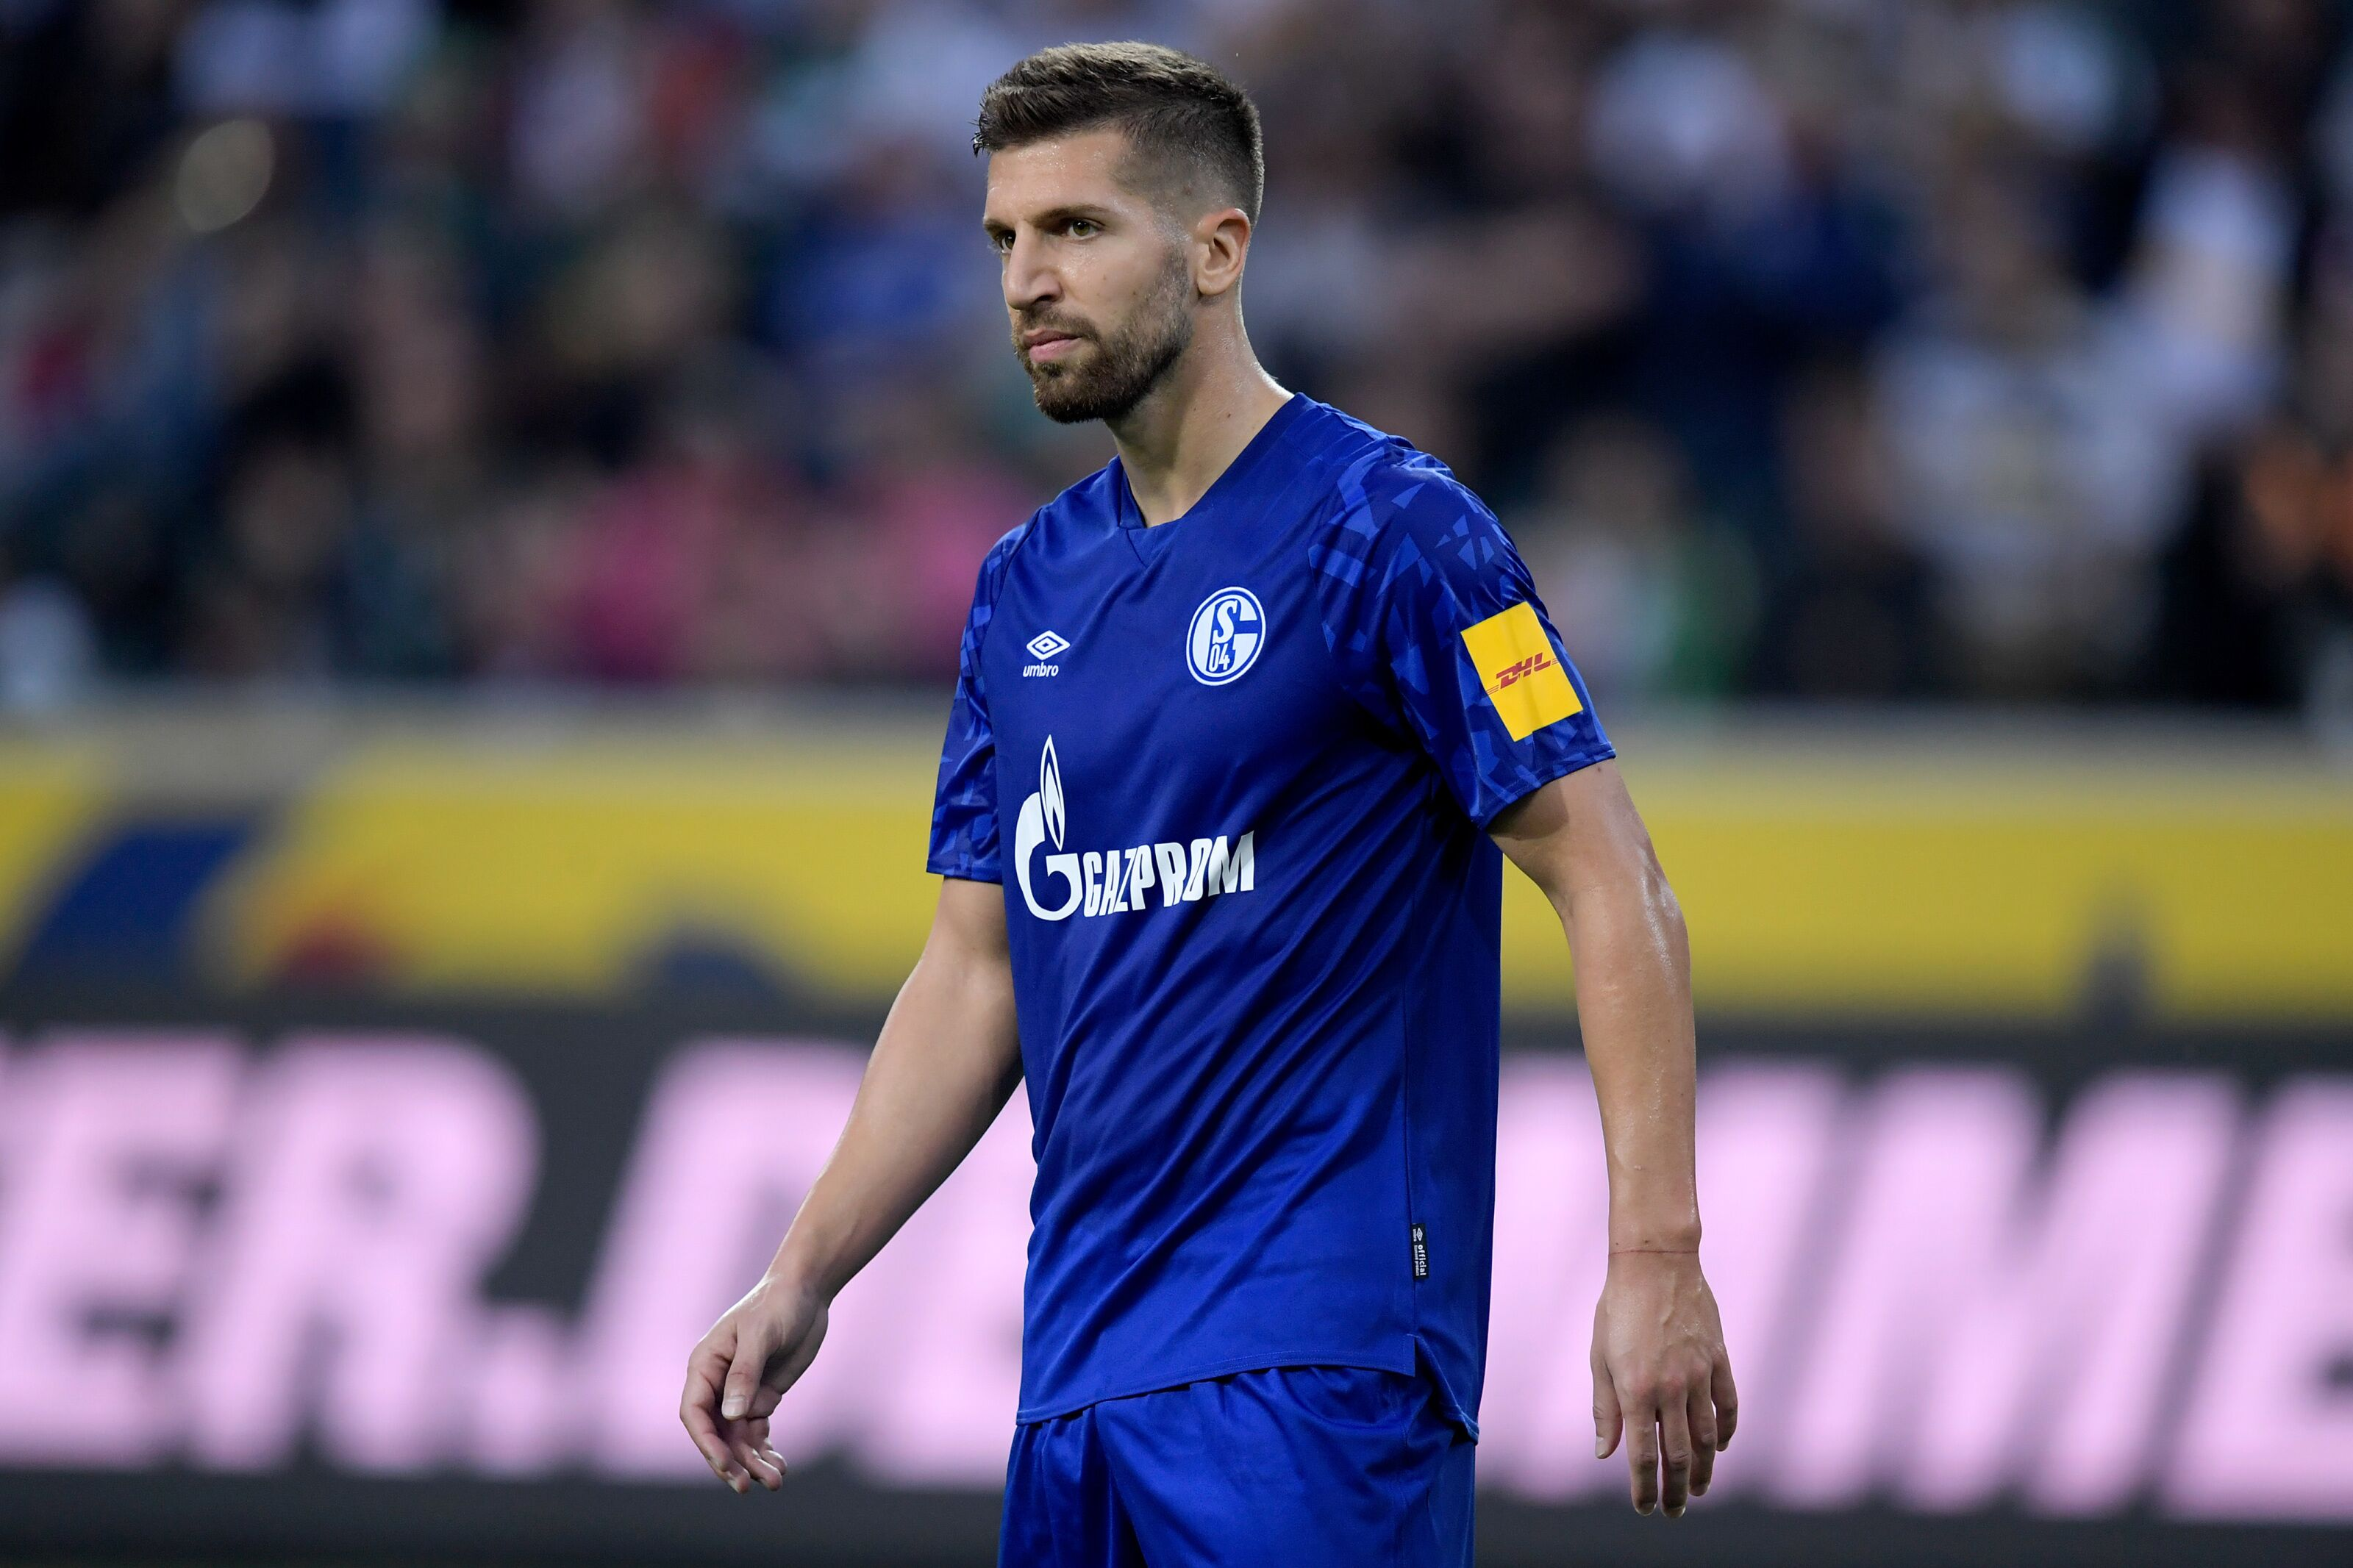 FC Schalke 04 will be missing Matija Nastasic again